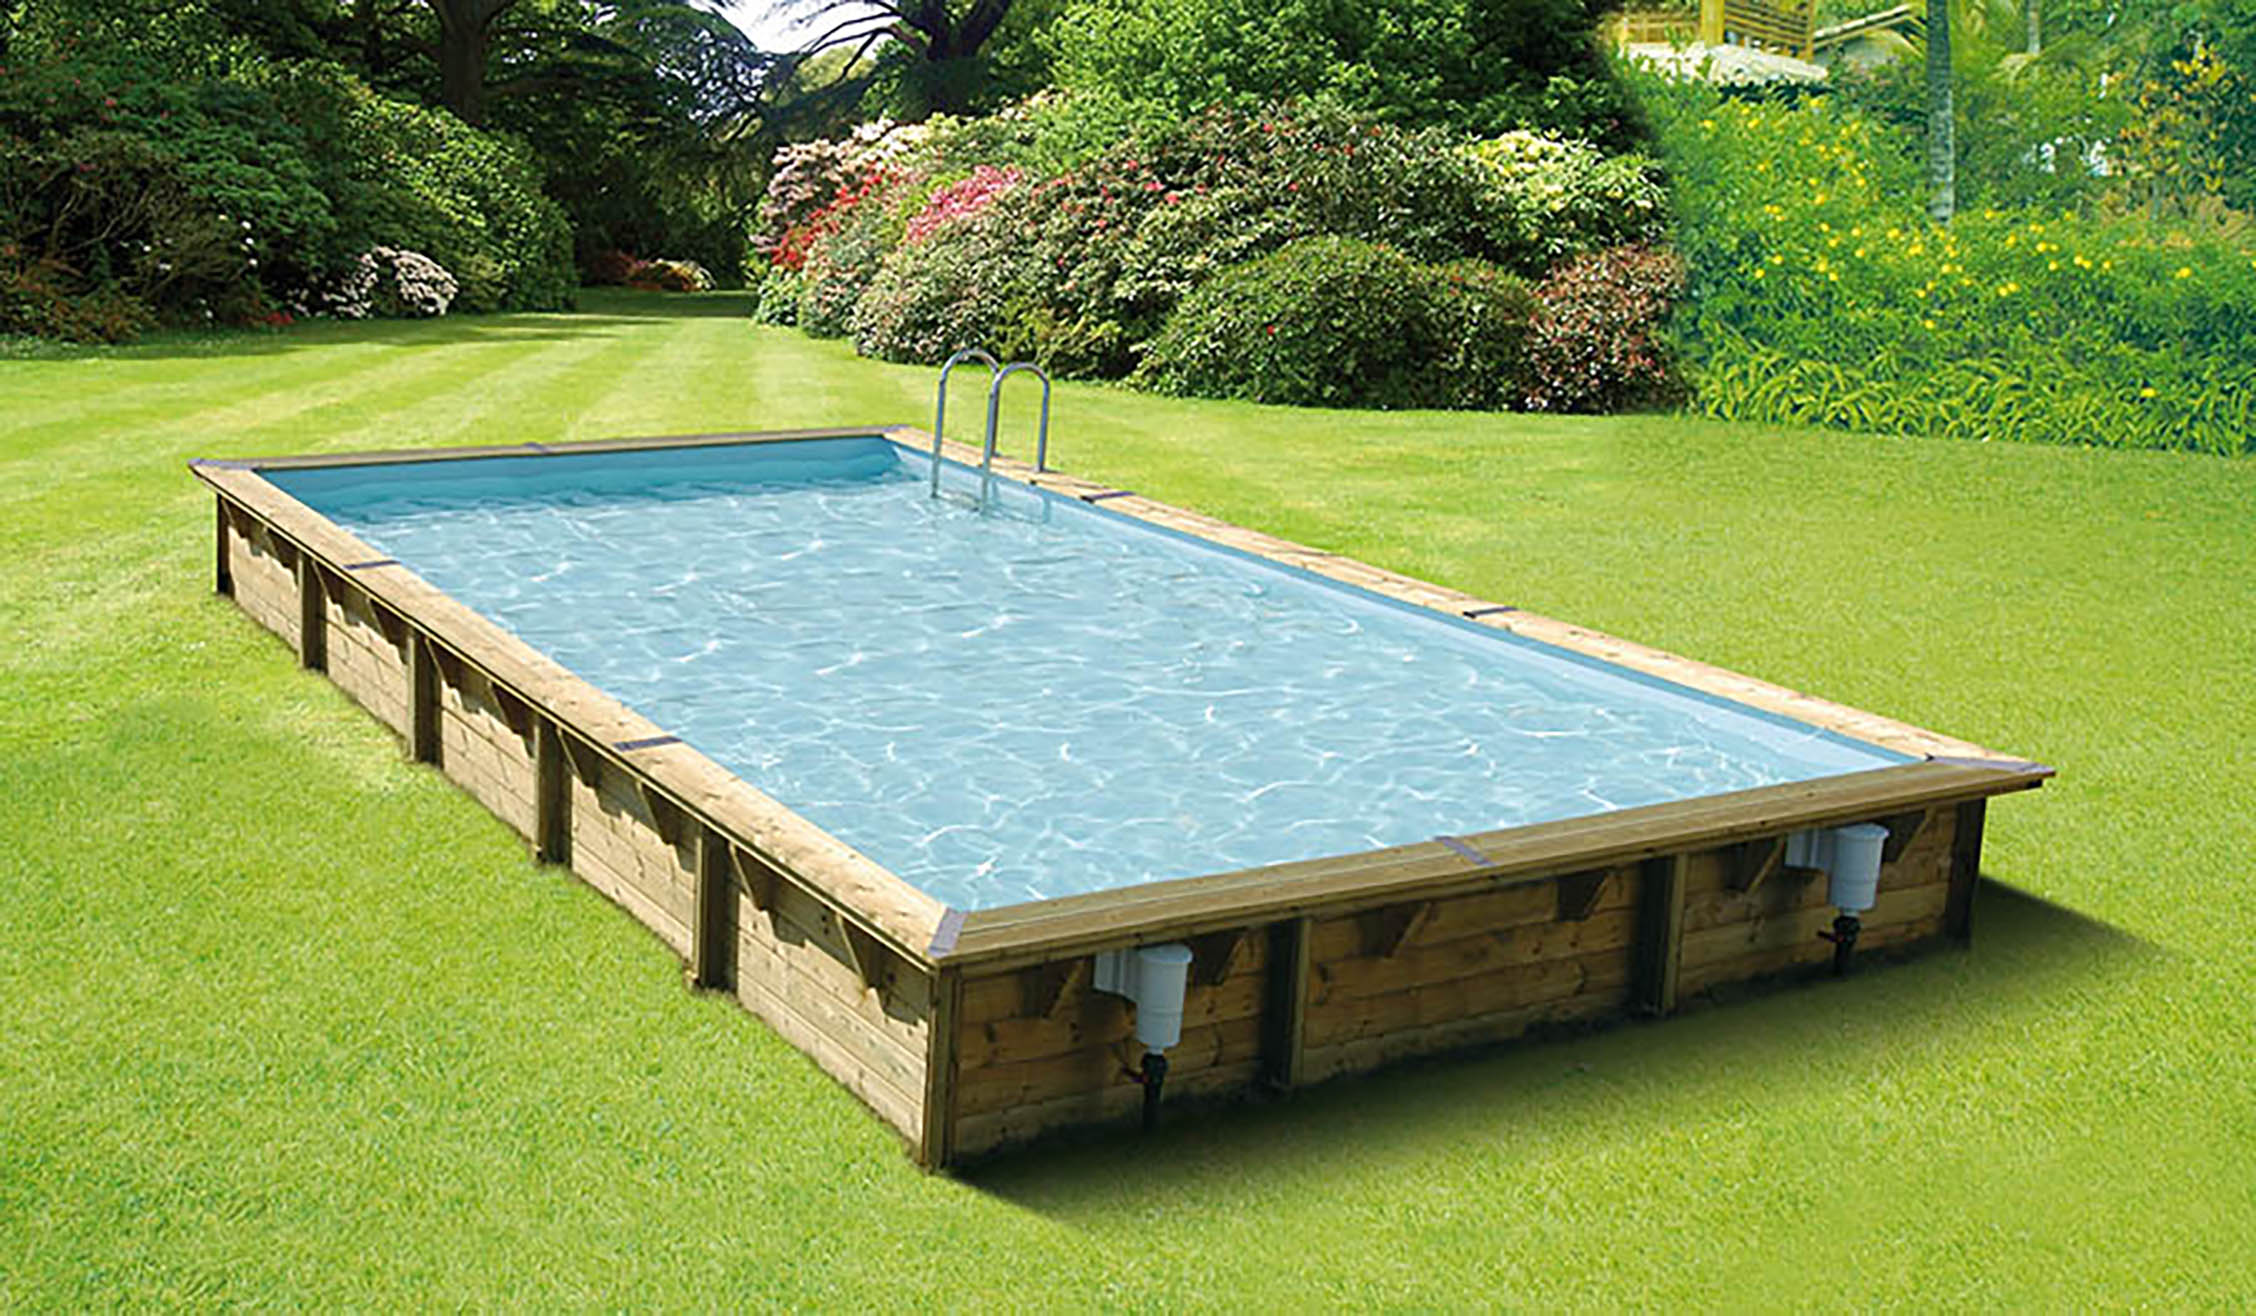 Amenagement piscine bois hors sol id es for Piscine hexagonale bois